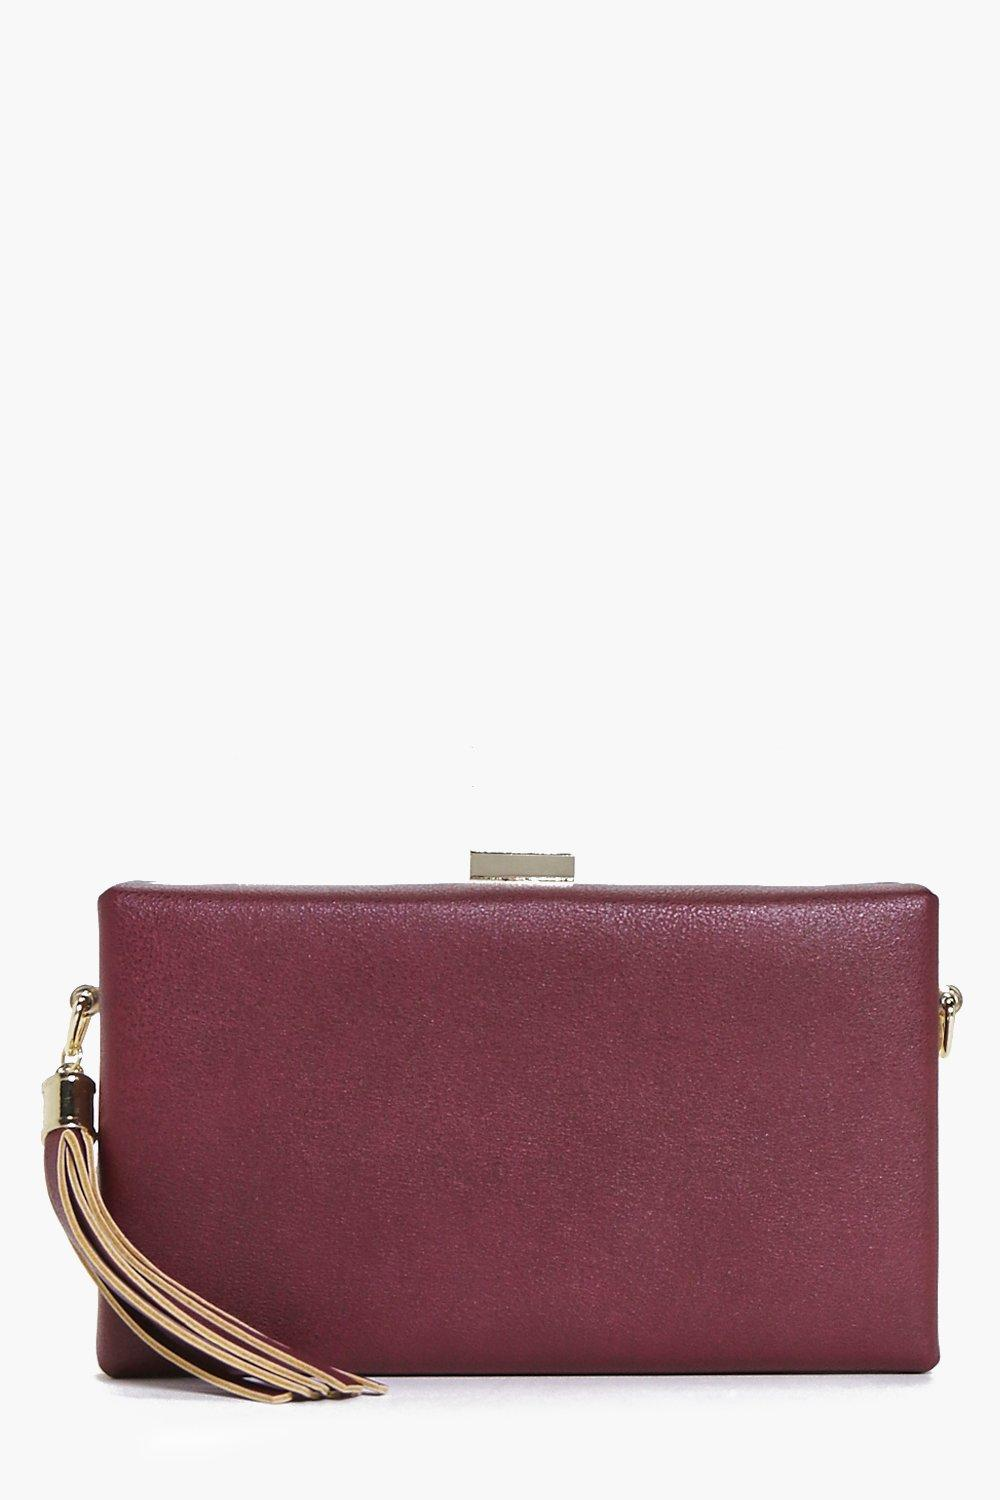 Molly Tassel Detail Box Clutch Bag